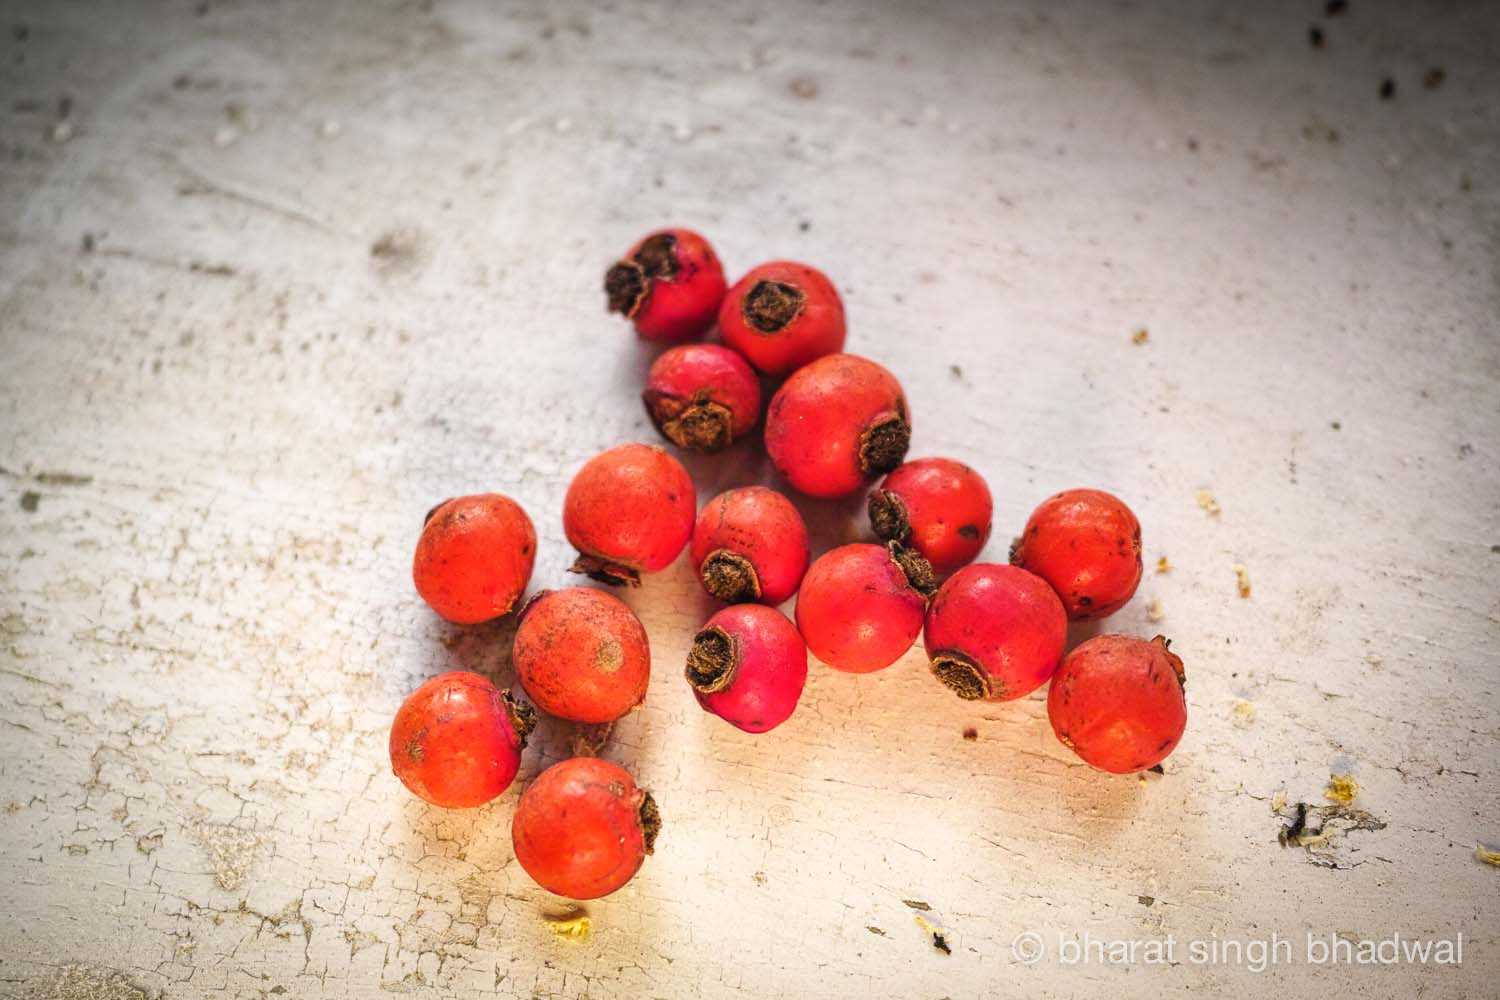 Drying rose hips in the sun. Wait till get wrinkly and leathery.